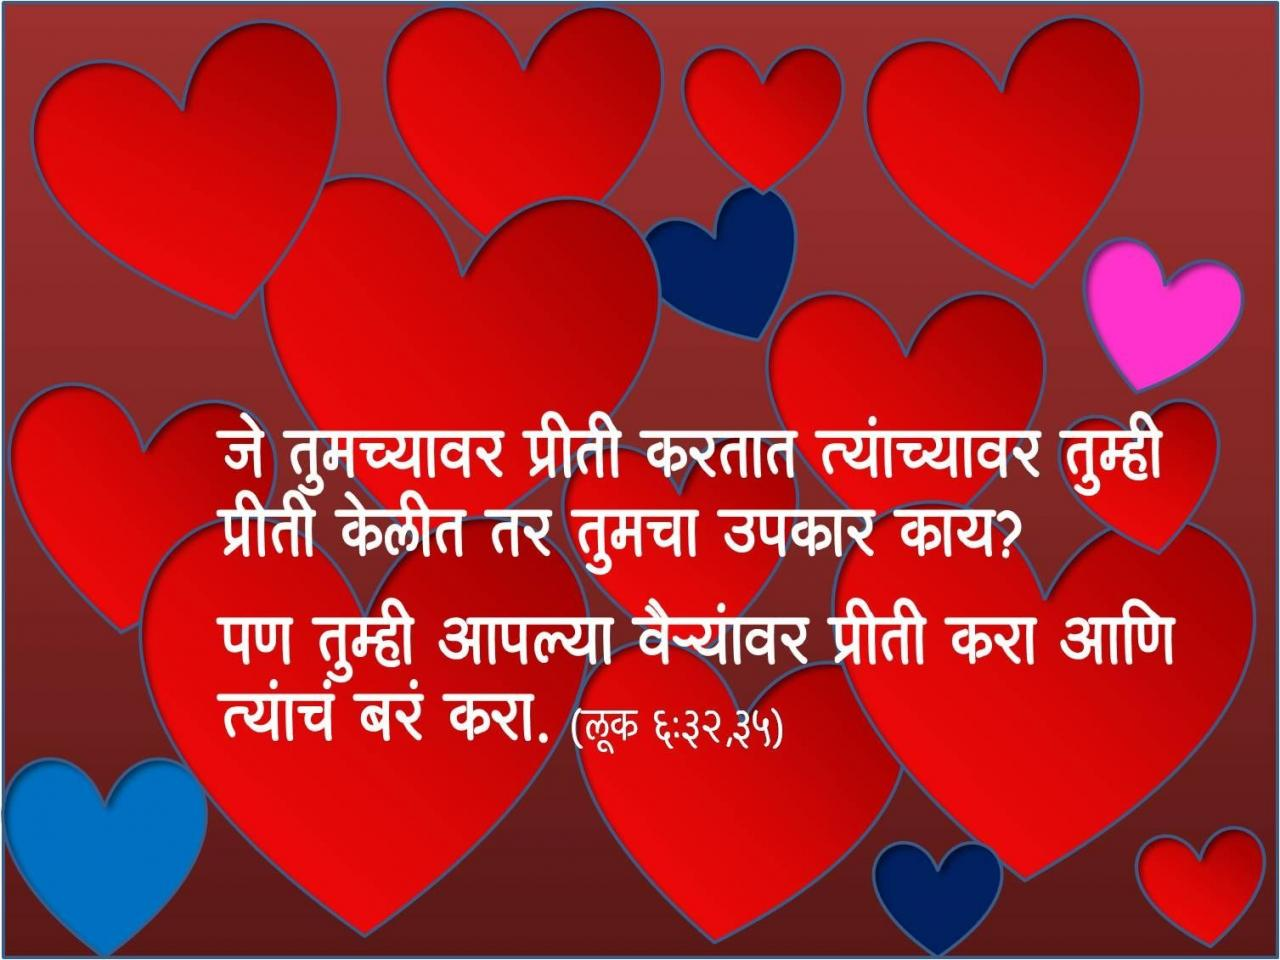 New Wallpaper Of Love Quotes Marathi Free Wallpaper Of Love Quotes Marathi Download Download New Wallpaper Of Love Quotes Marathi From The Above Display